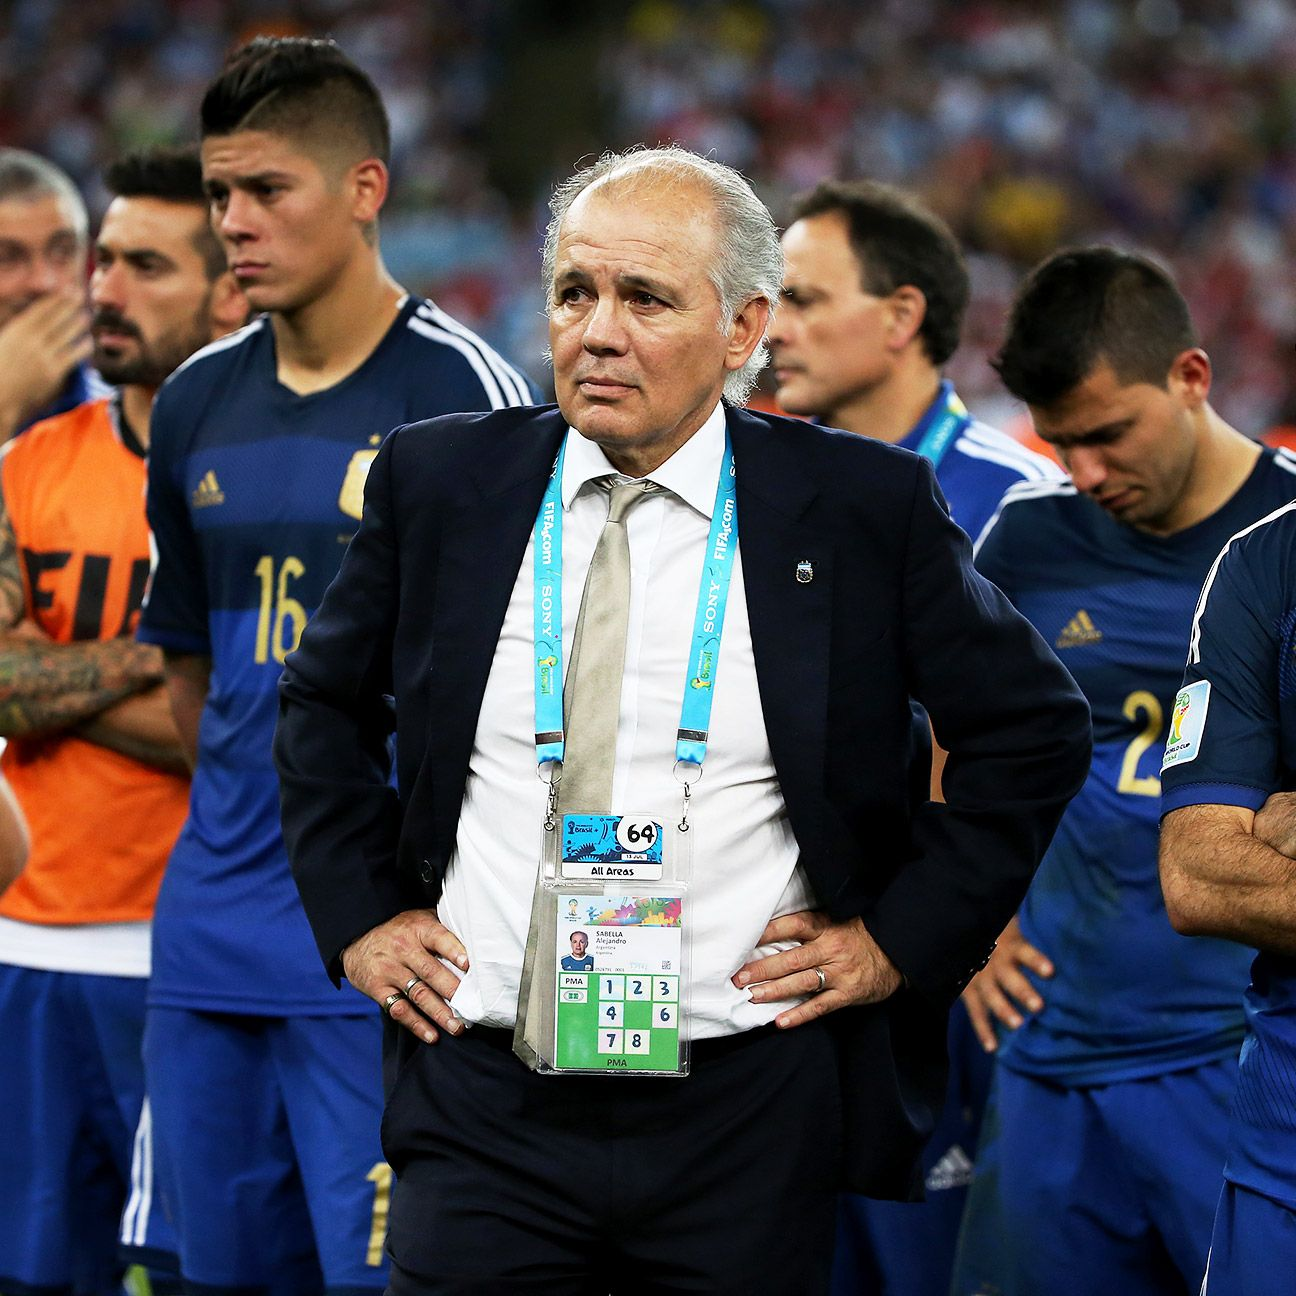 With Sabella set to step down as Argentina manager, the nation's football is at an intriguing junction.